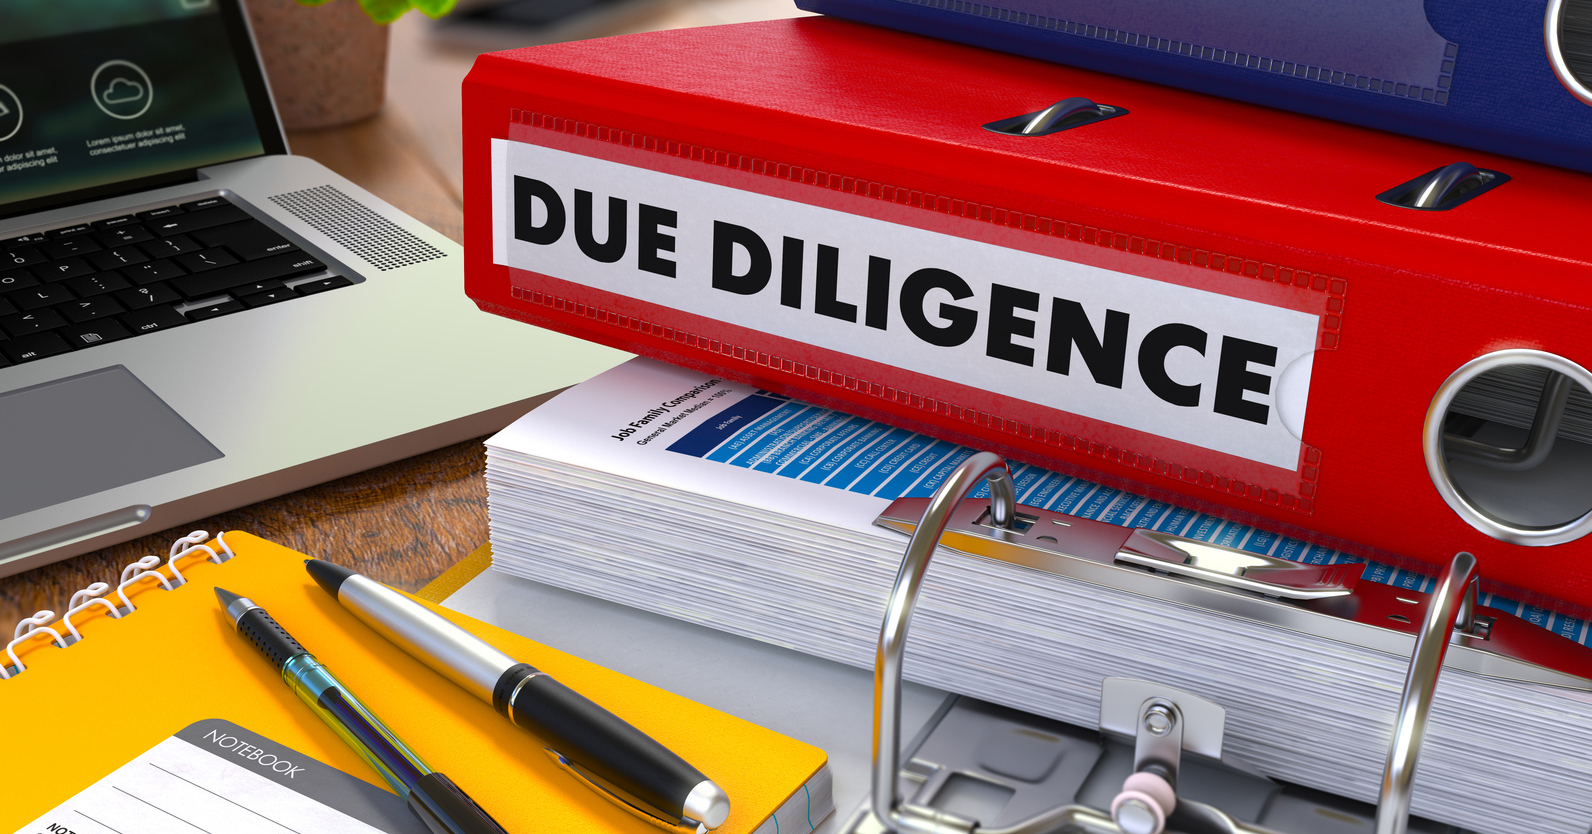 Red binder with inscription due diligence